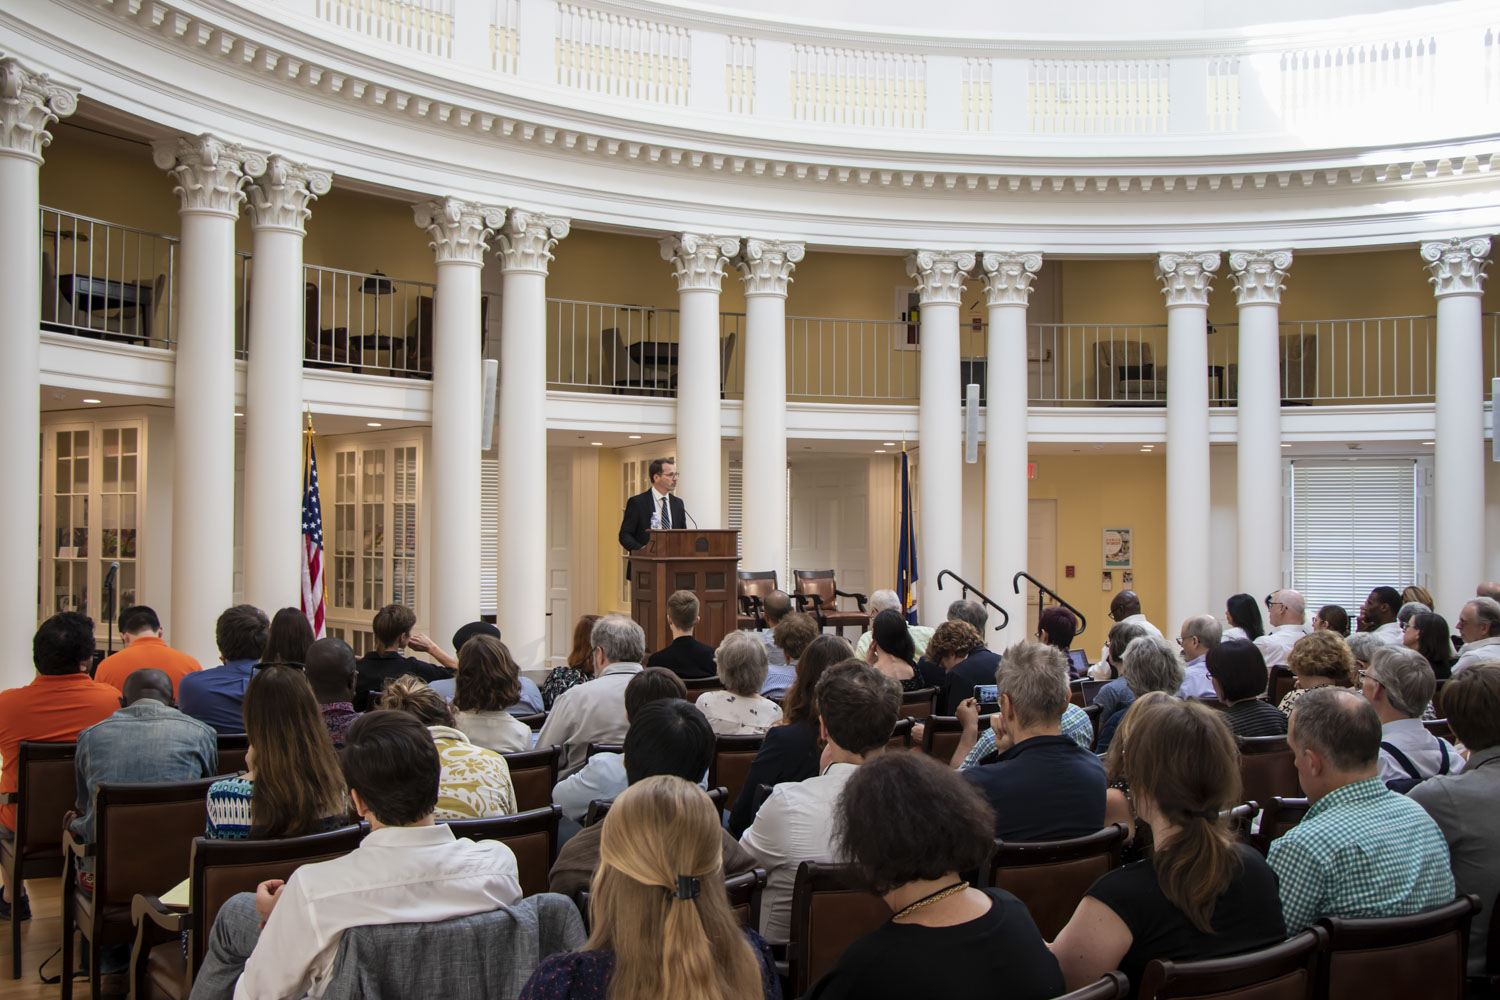 UVA Arts & Sciences Dean Ian Baucom, the former president of the sponsoring Consortium of Humanities Centers and Institutes, welcomes conference participants Thursday in the Rotunda's Dome Room.